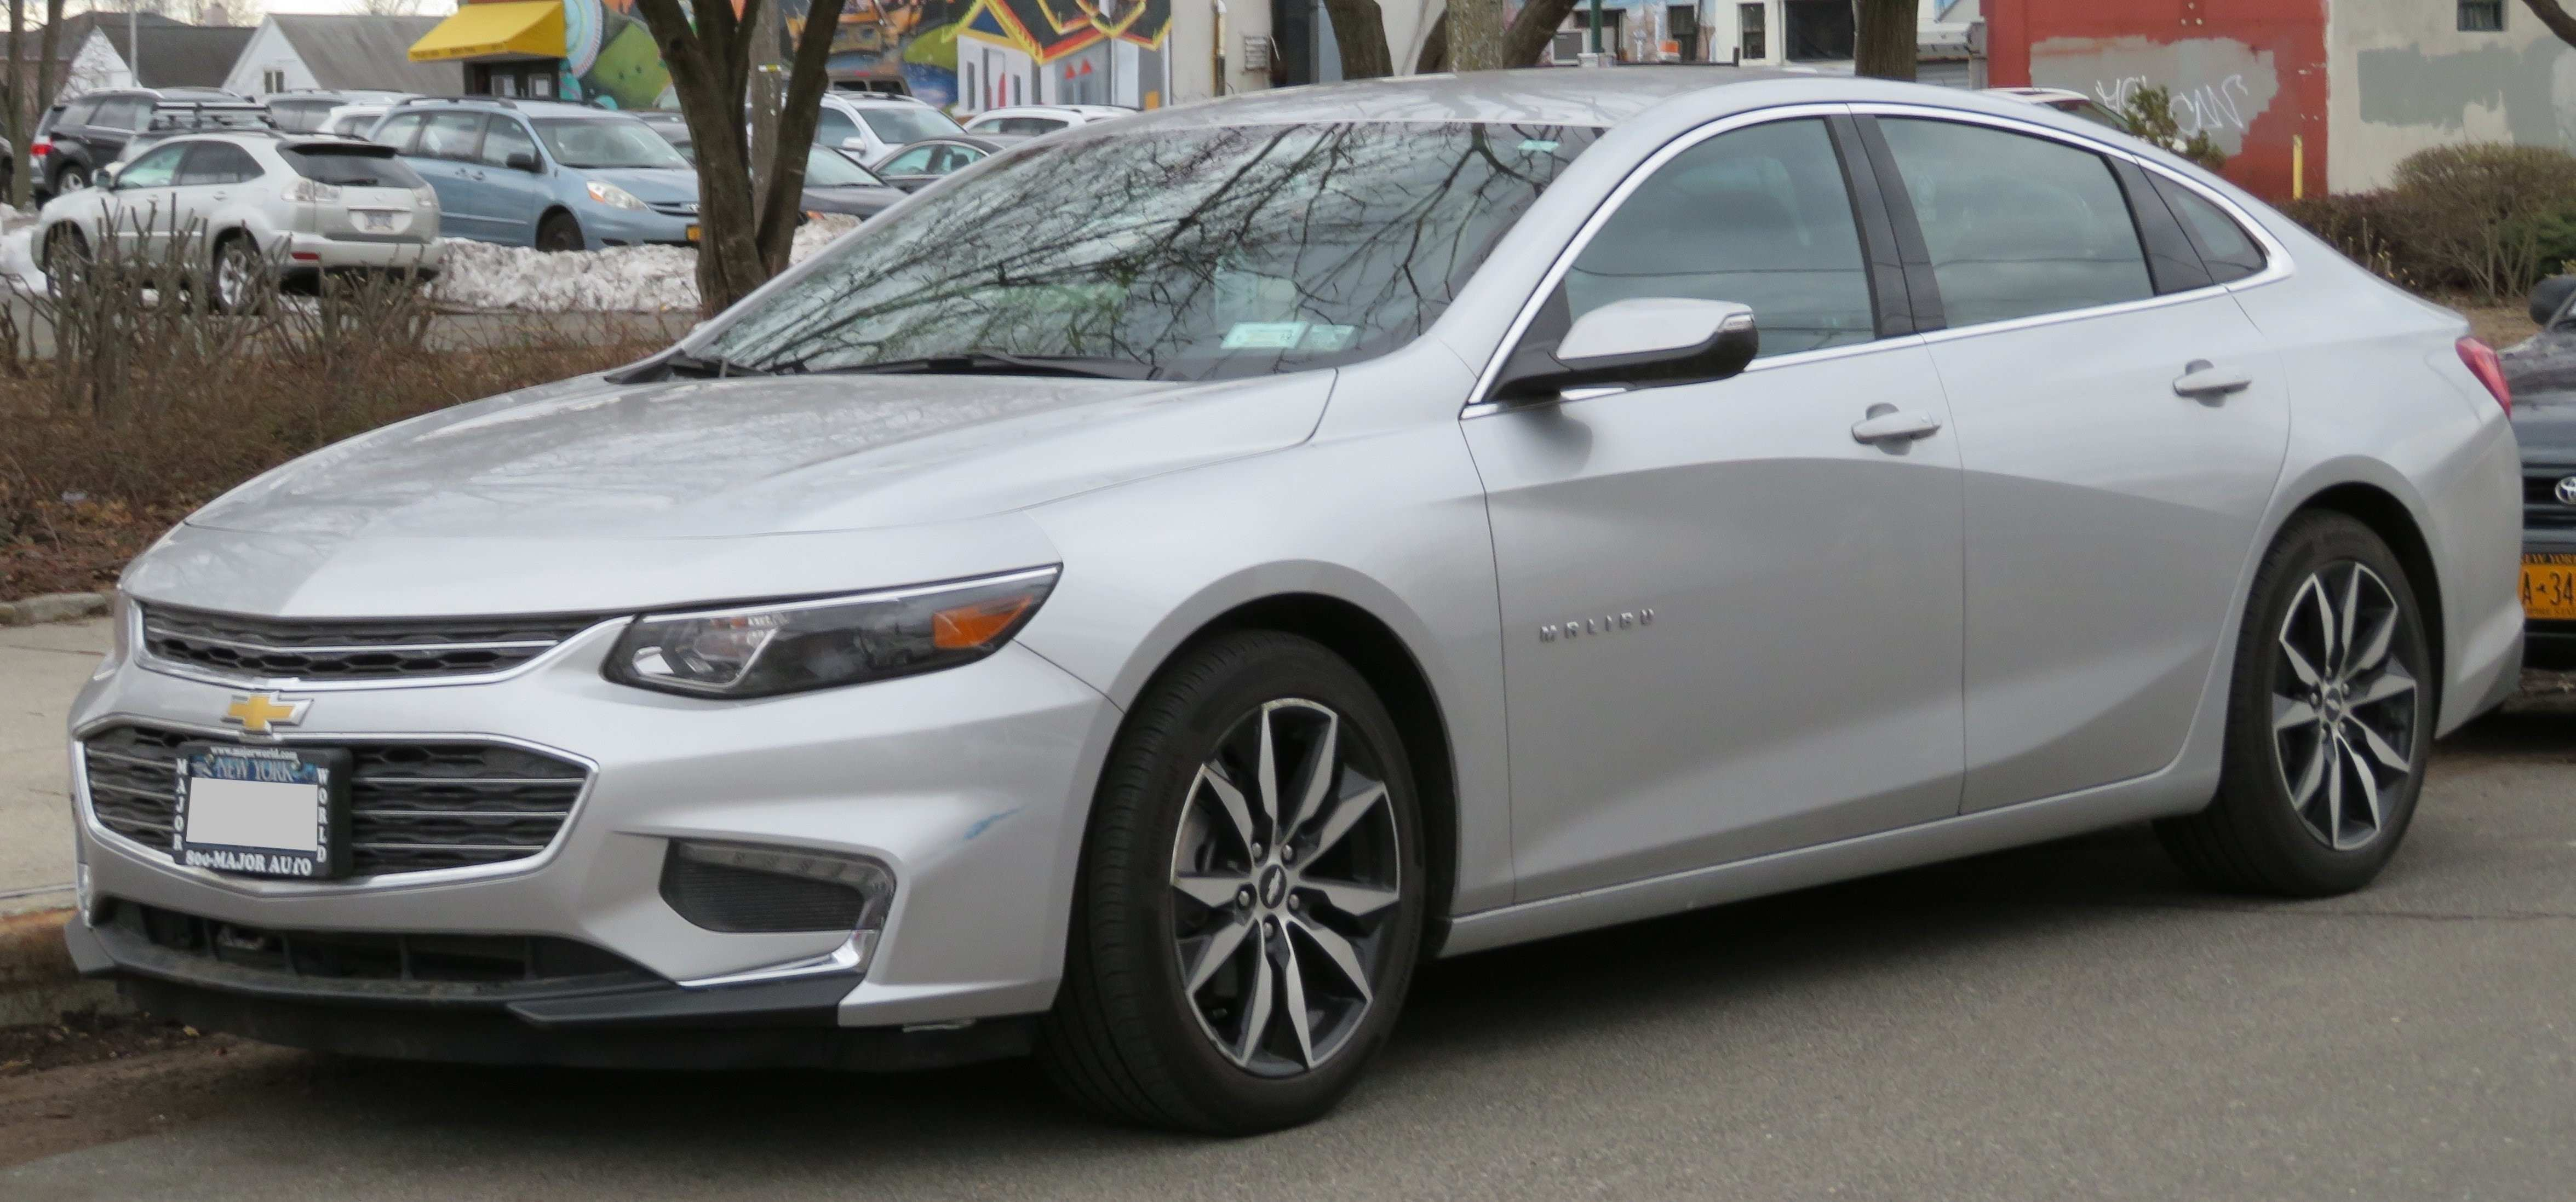 27 The Best 2019 Holden Commodore Gts Price And Review